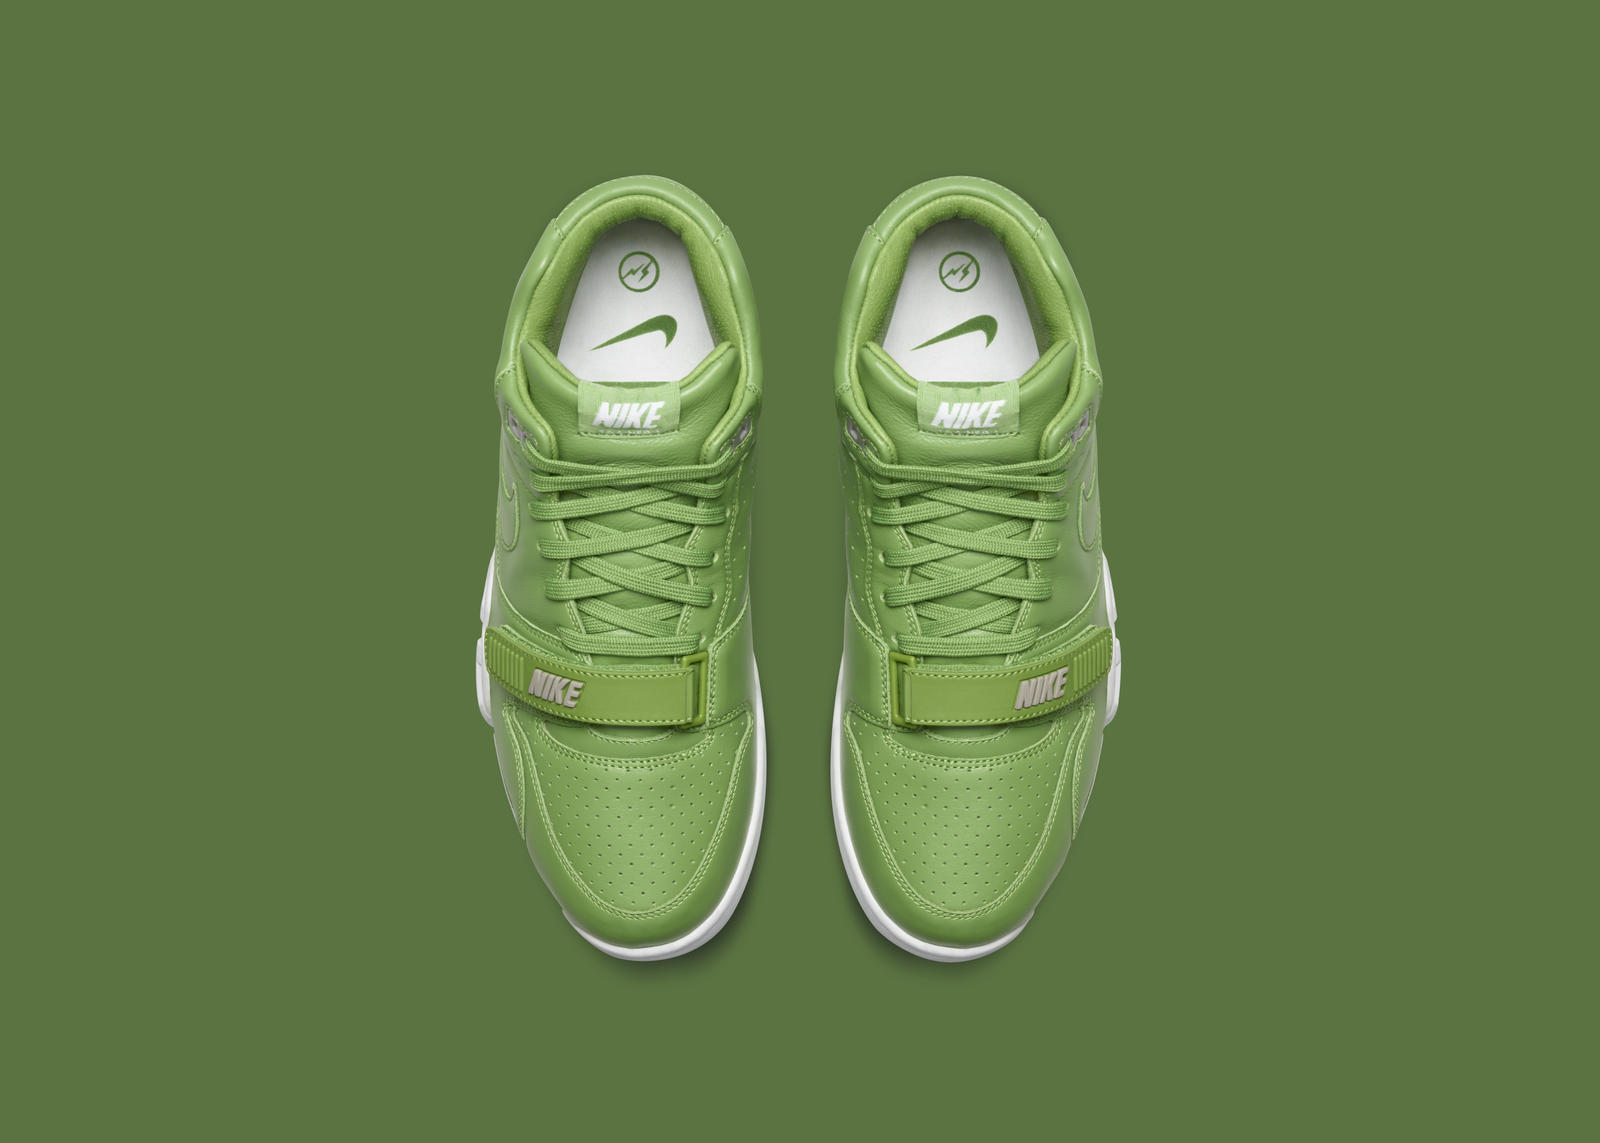 Nikecourt air trainer 1 x fragment 6 rectangle 1600